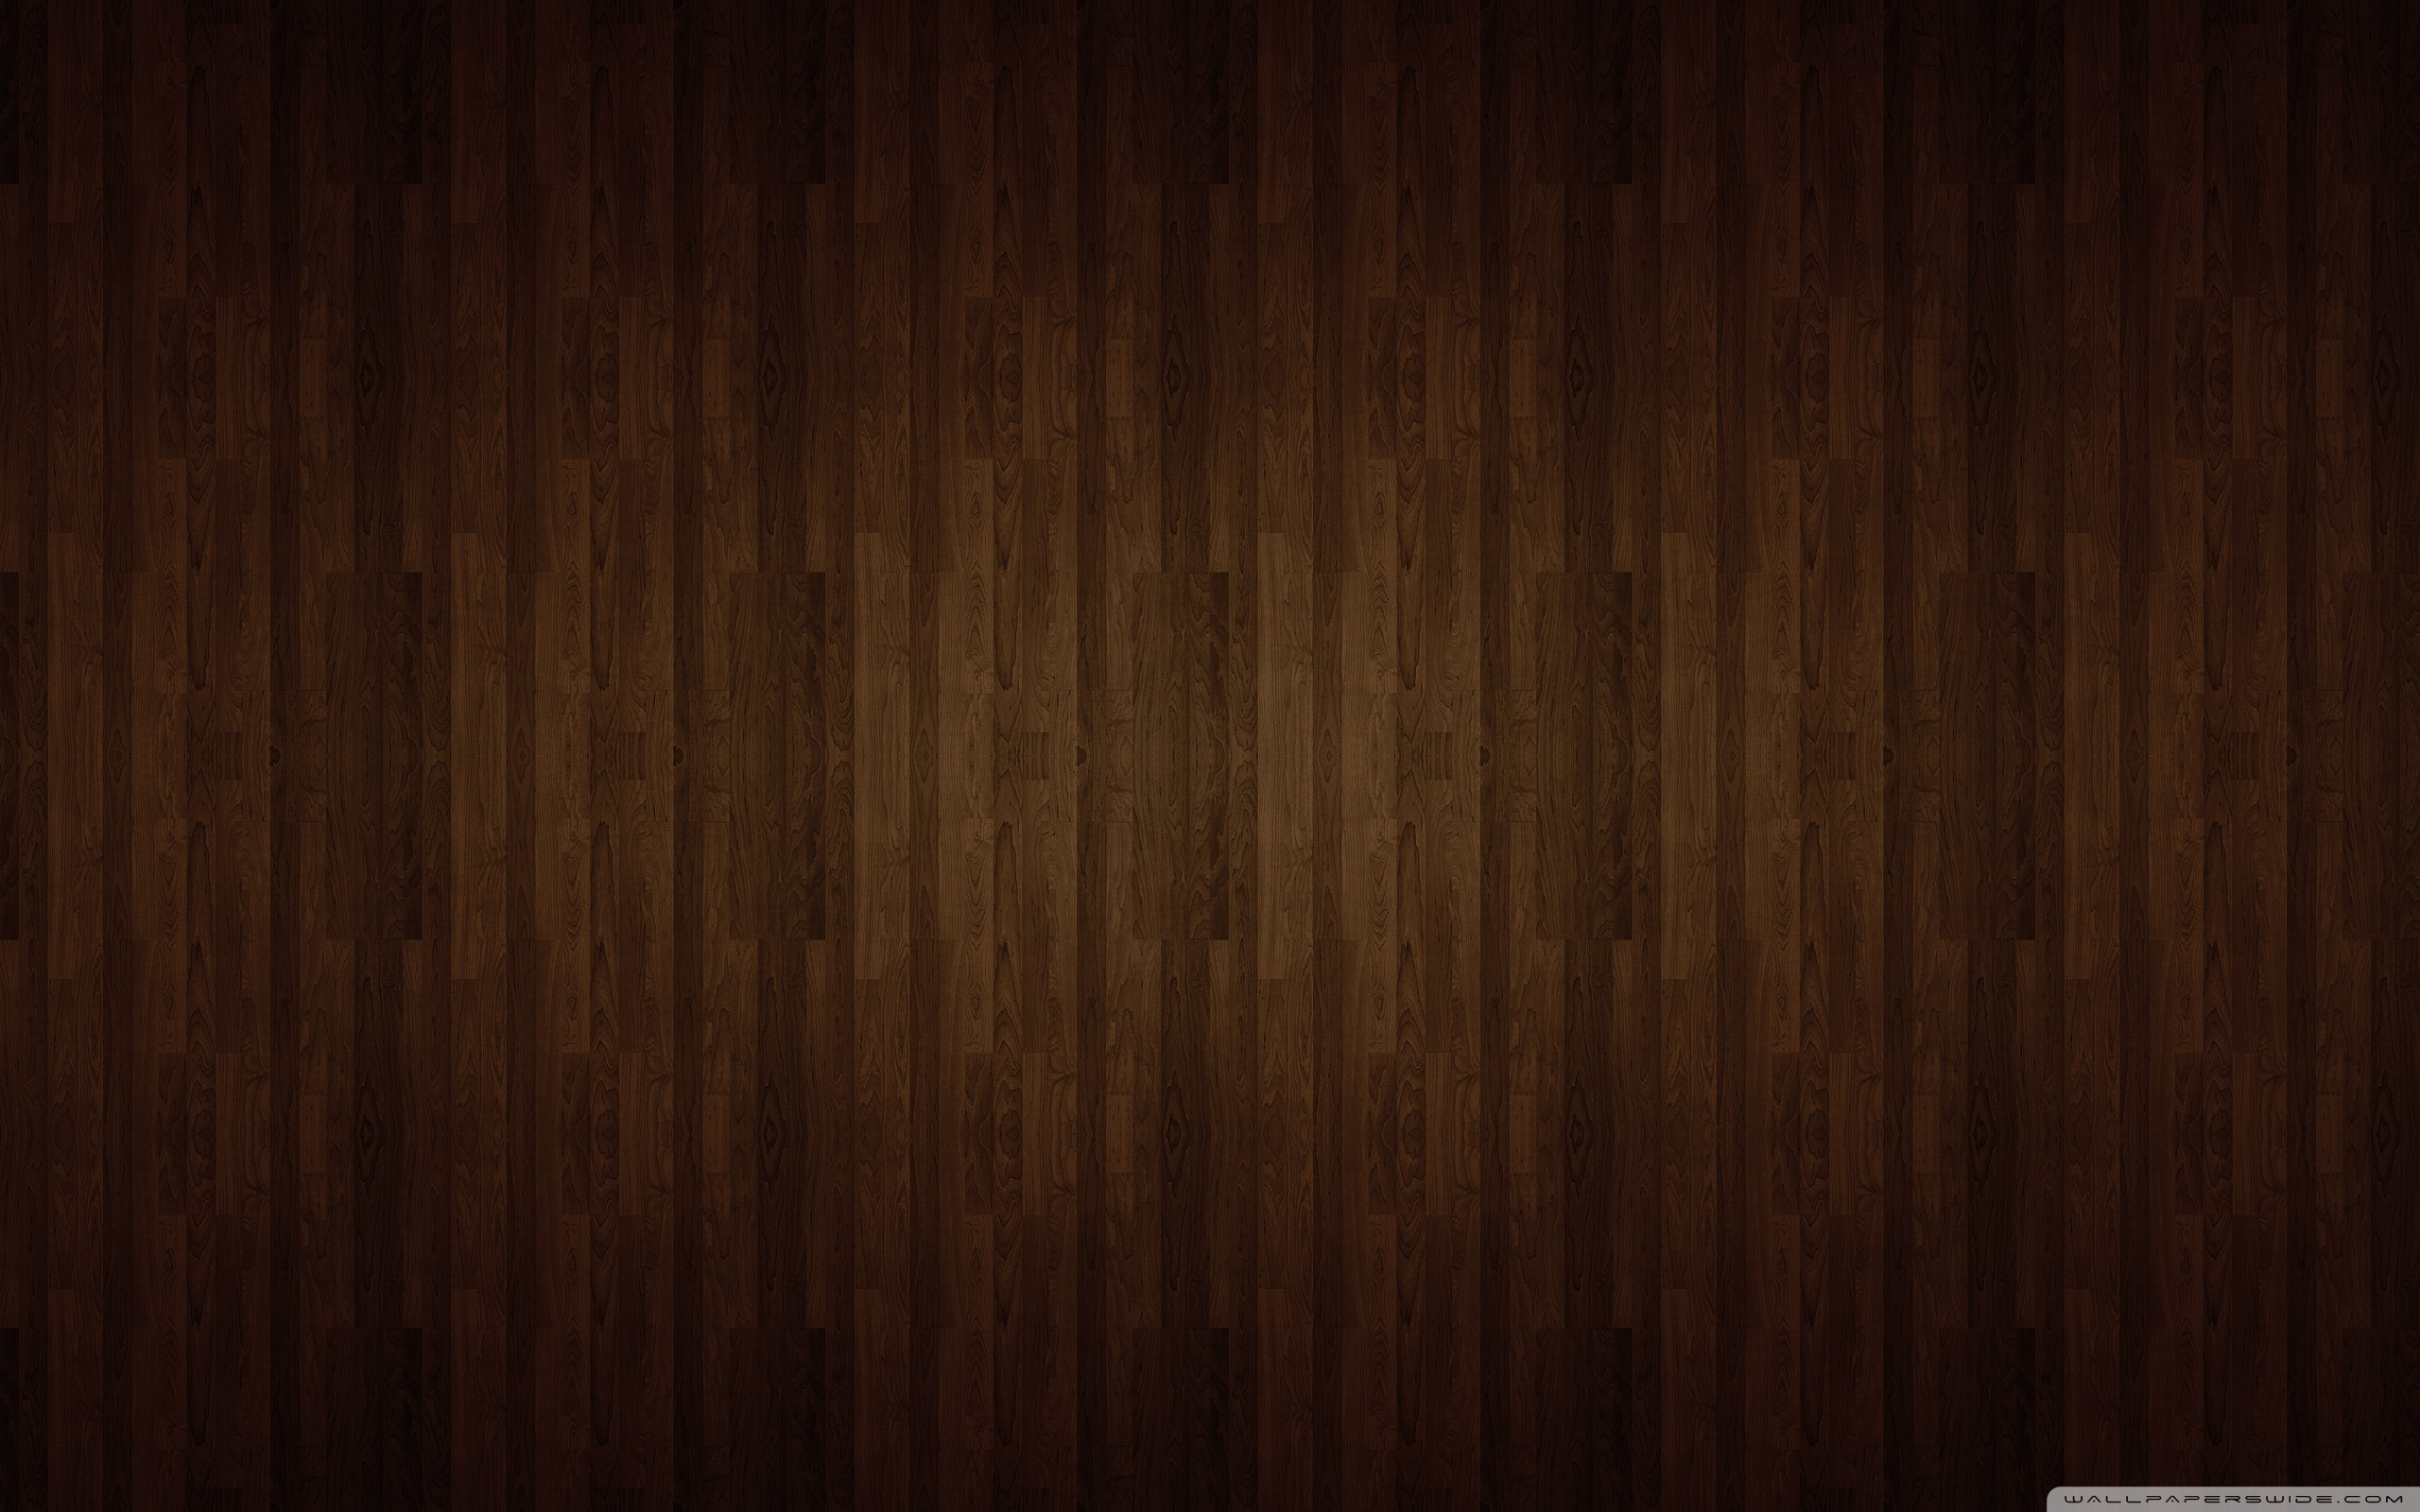 Wooden Floor Backgrounds on Wallpapers Vista